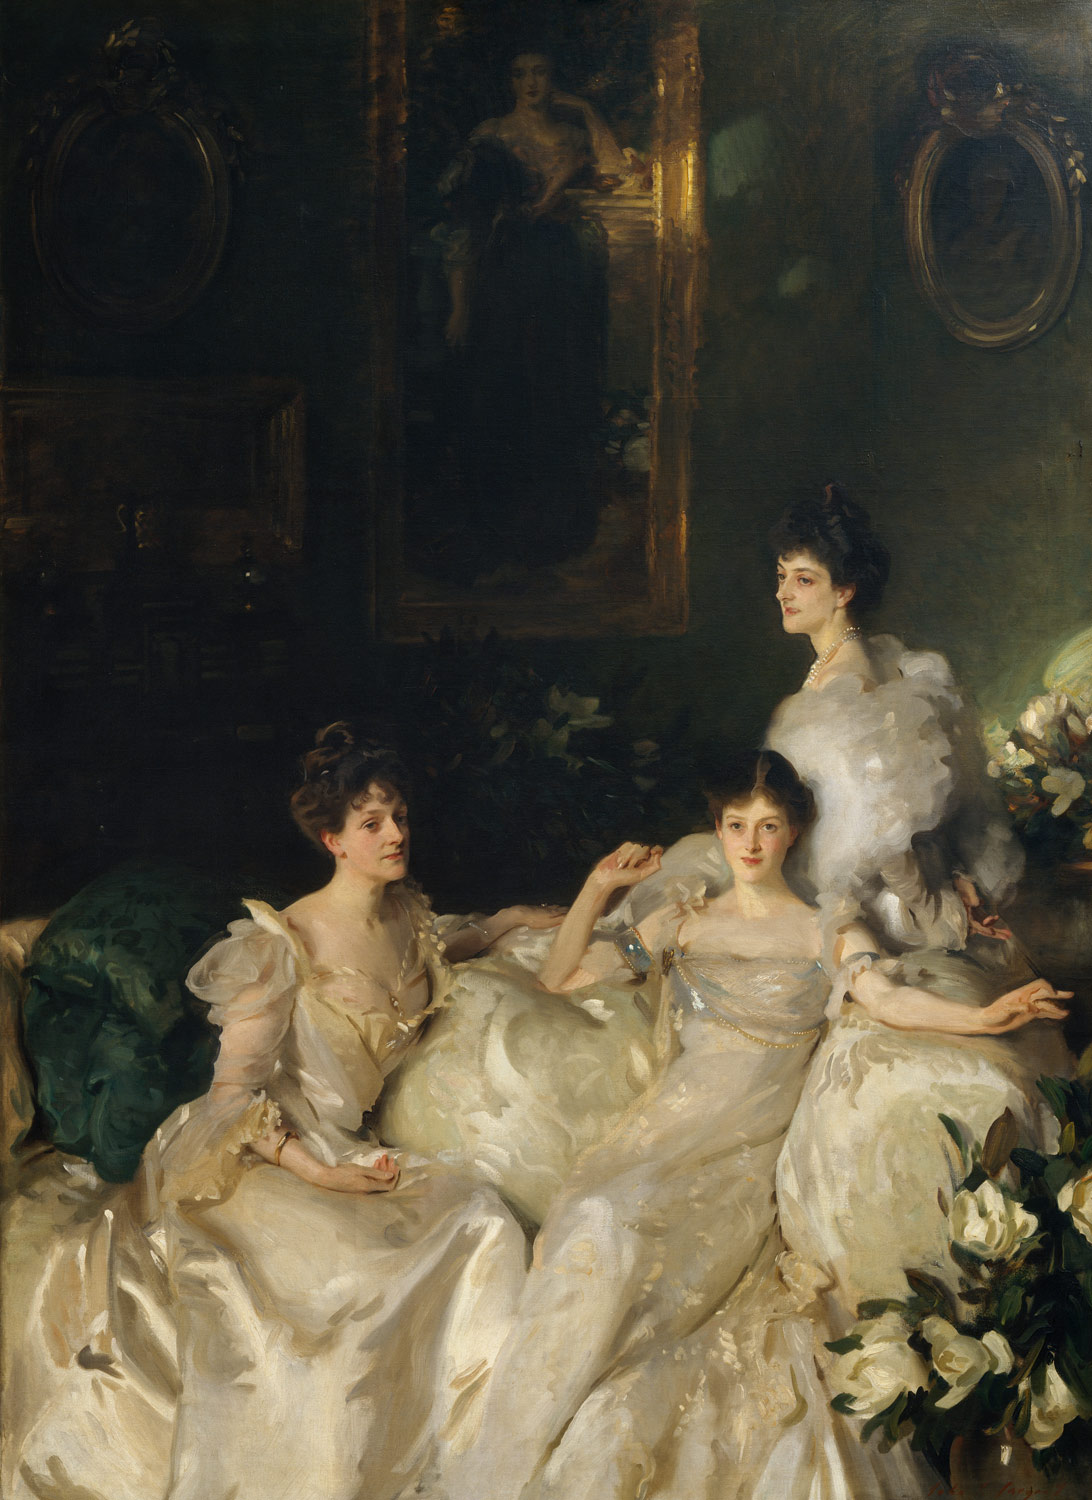 Wyndham Sisters painting by John Singer Sargent in 1899.